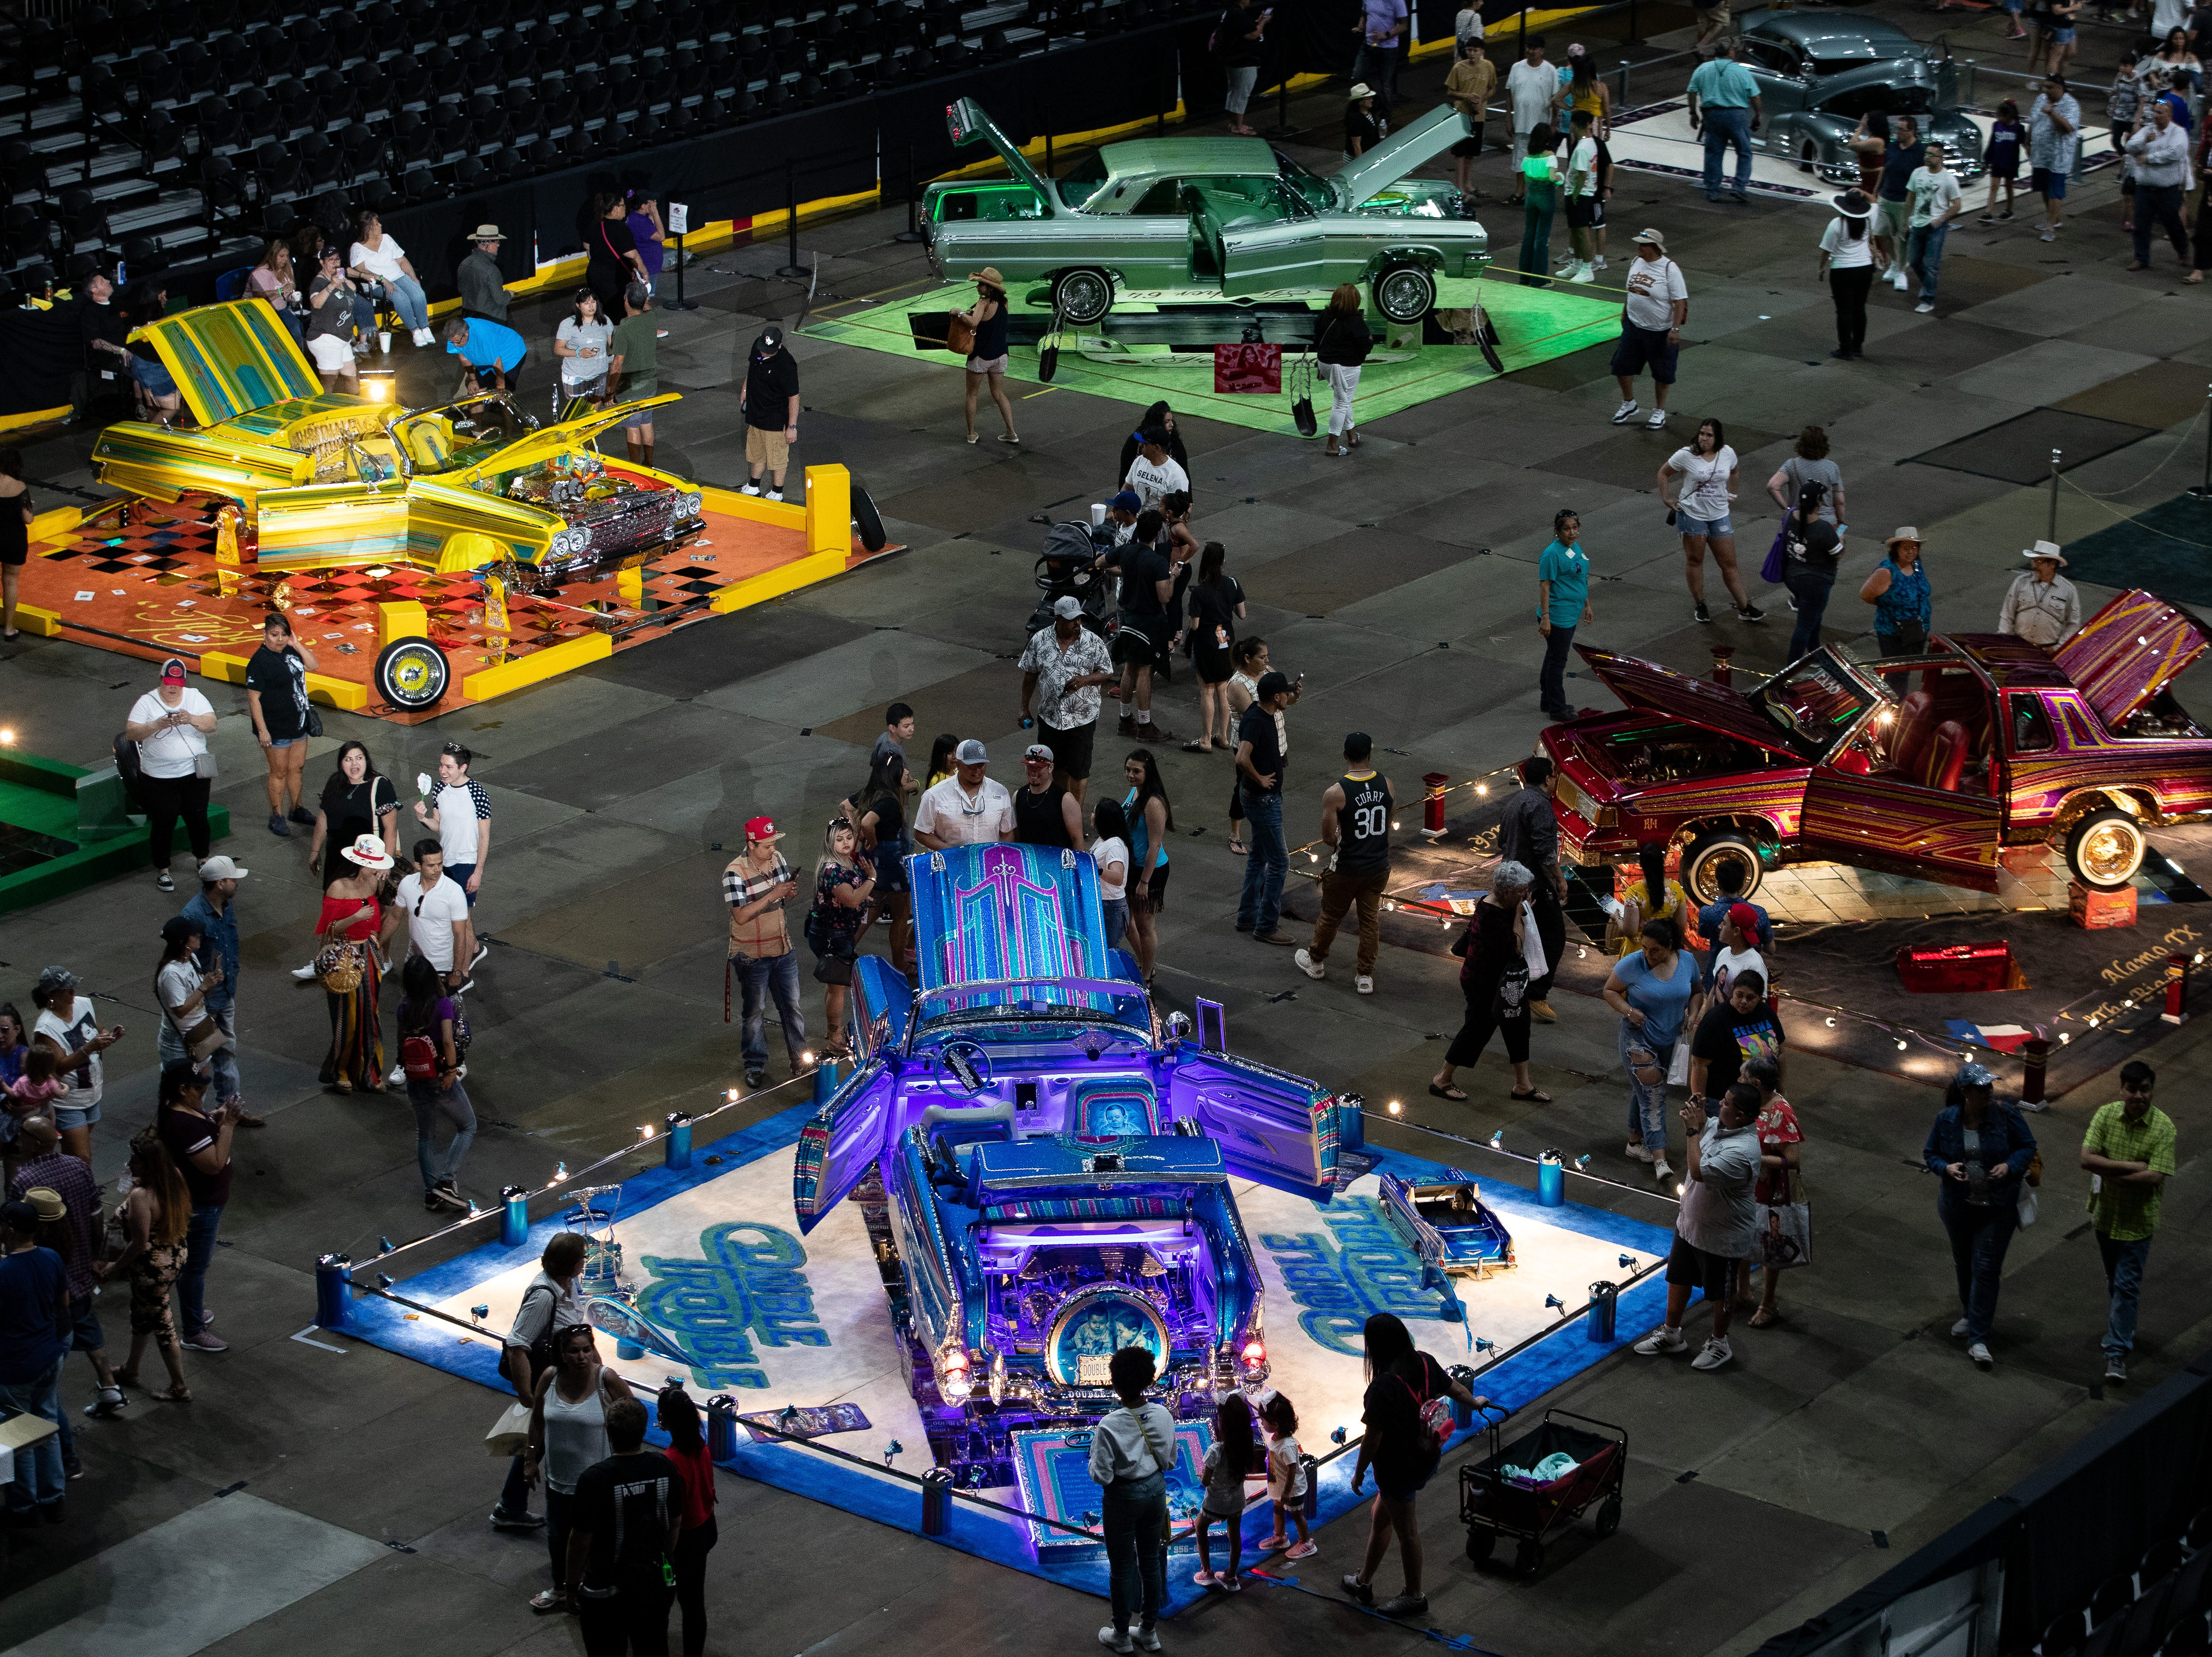 The Lowrider Extravaganza at the American bank center on the second say of Fiesta de la Flor on Saturday, April 13, 2019.